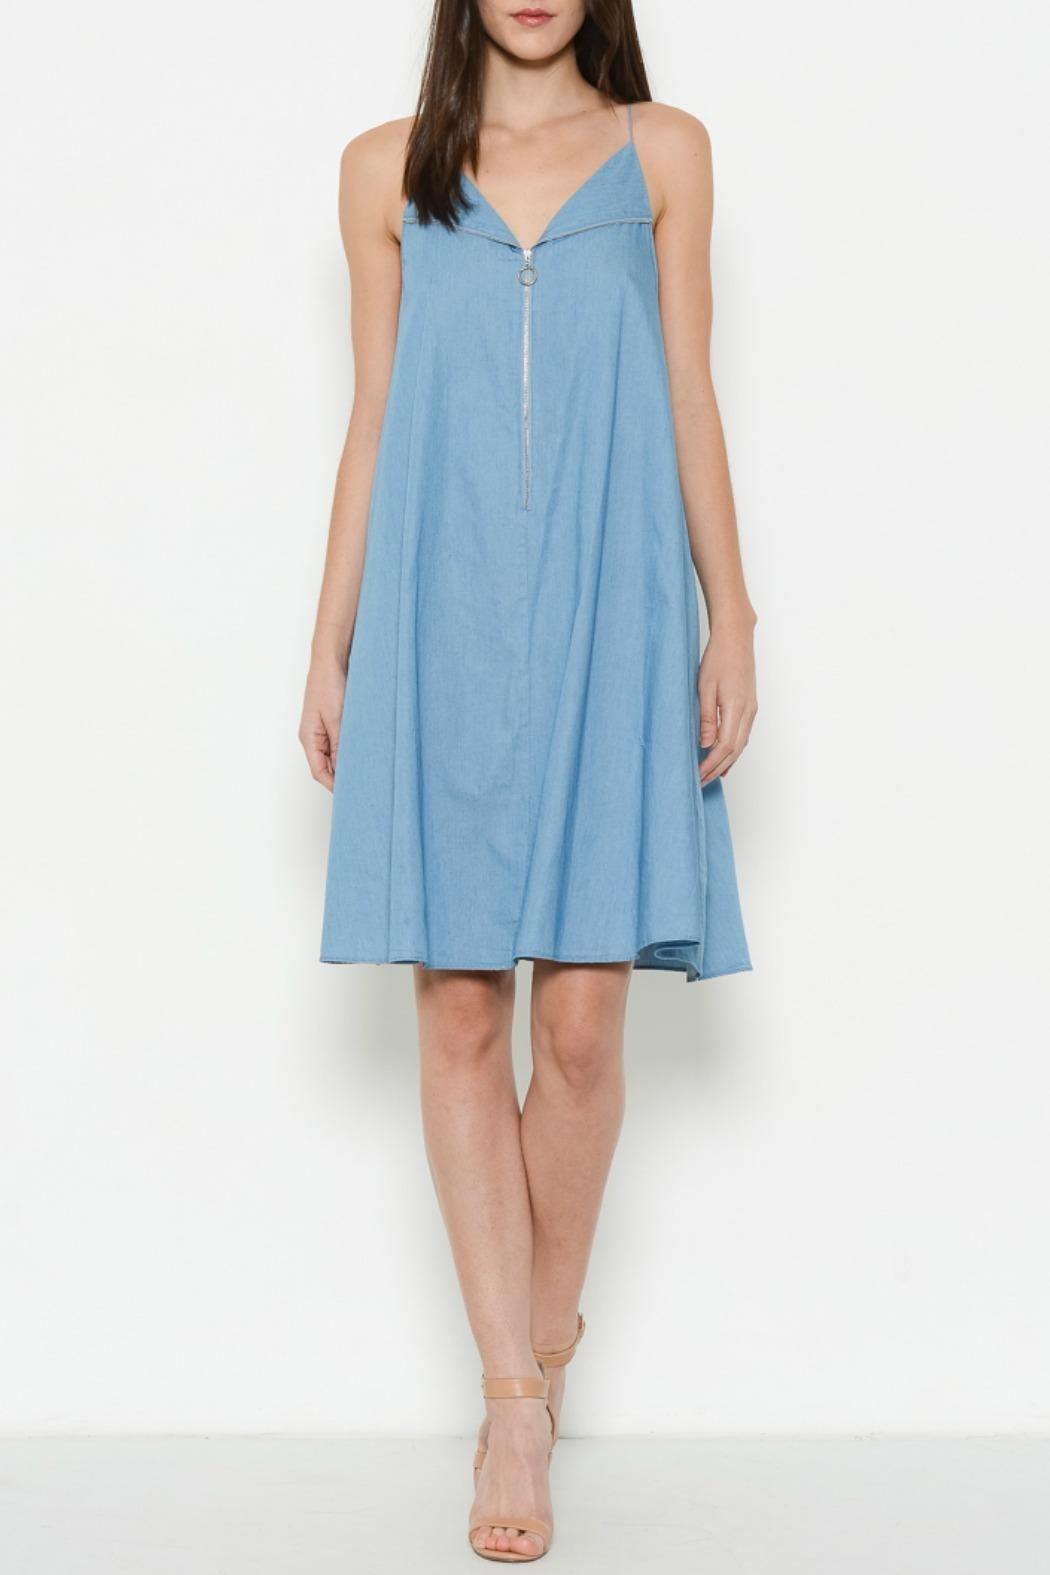 FATE by LFD Chambray Summer Dress from Maryland by Velvet Trunk ...